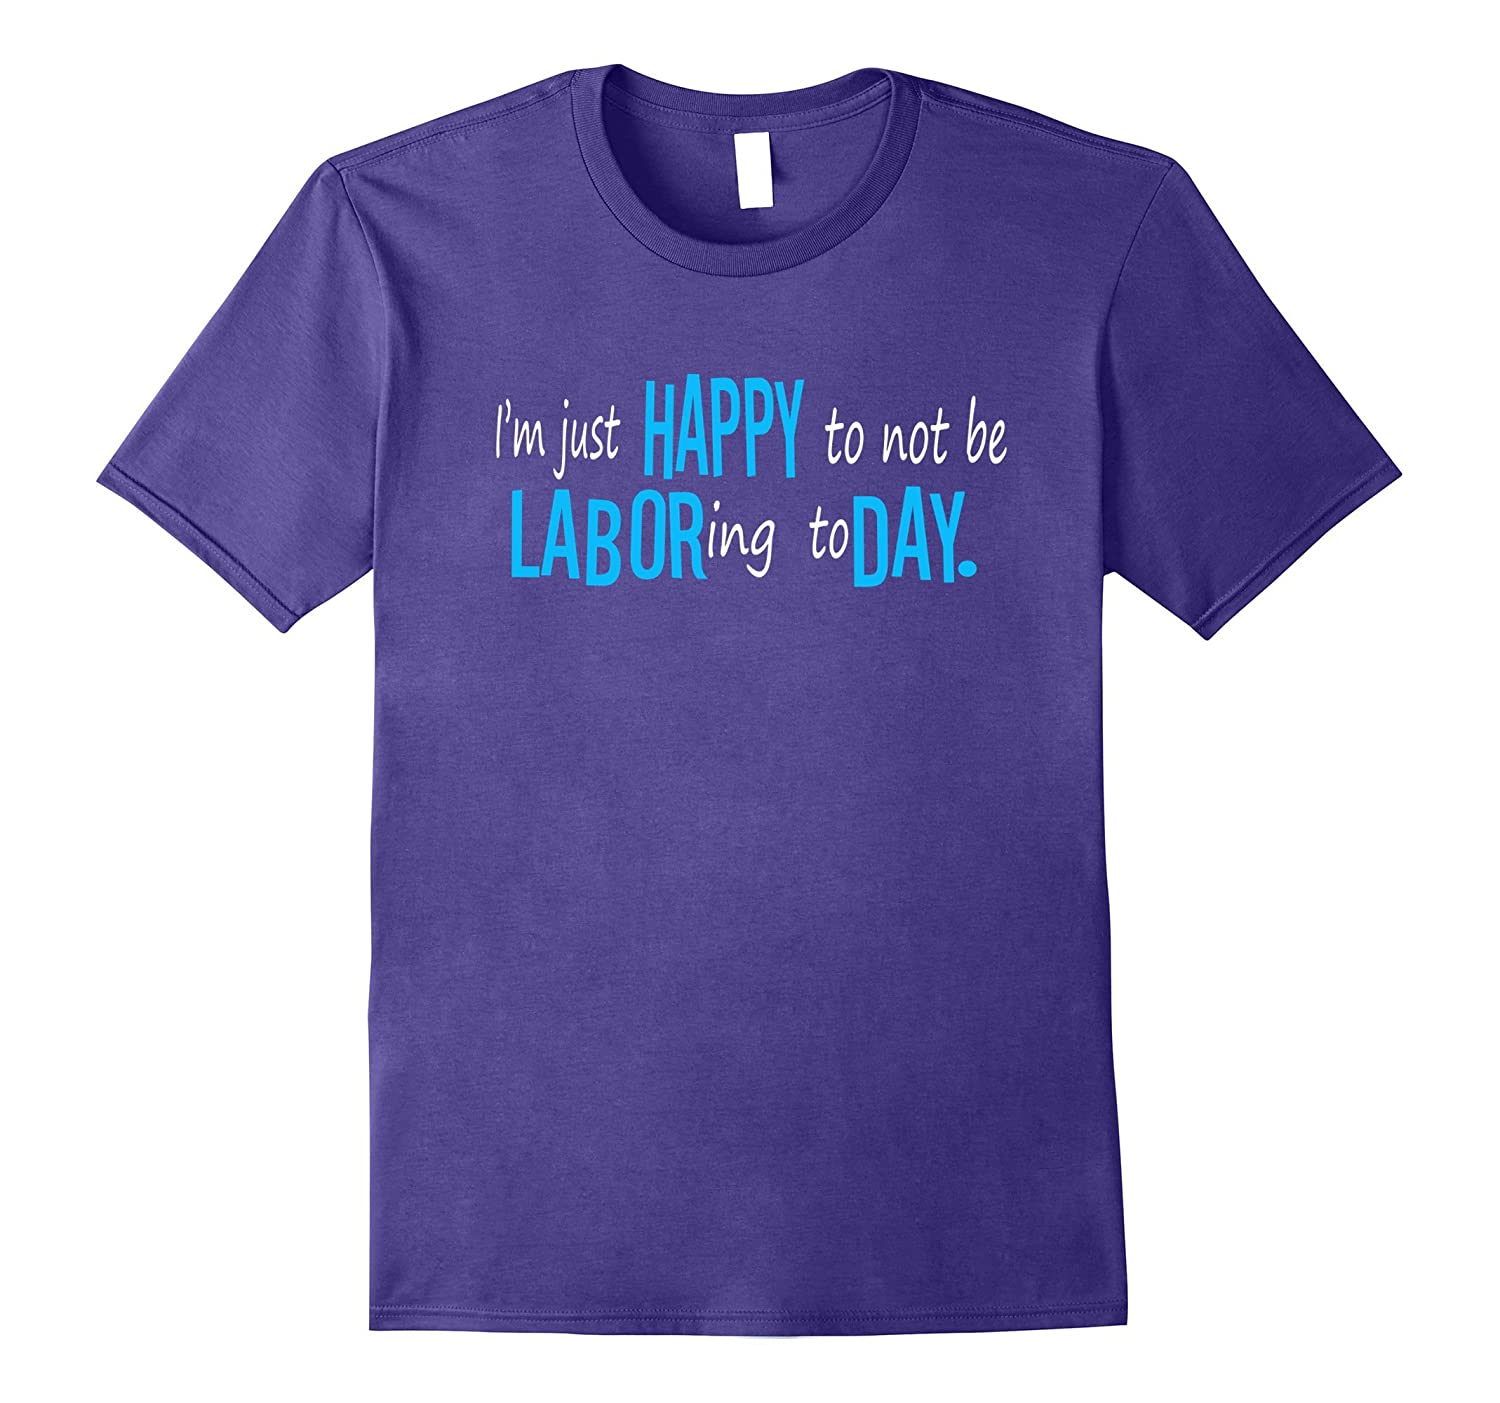 Happy Labor Day T-Shirt (Funny Labor Day Shirt)-BN